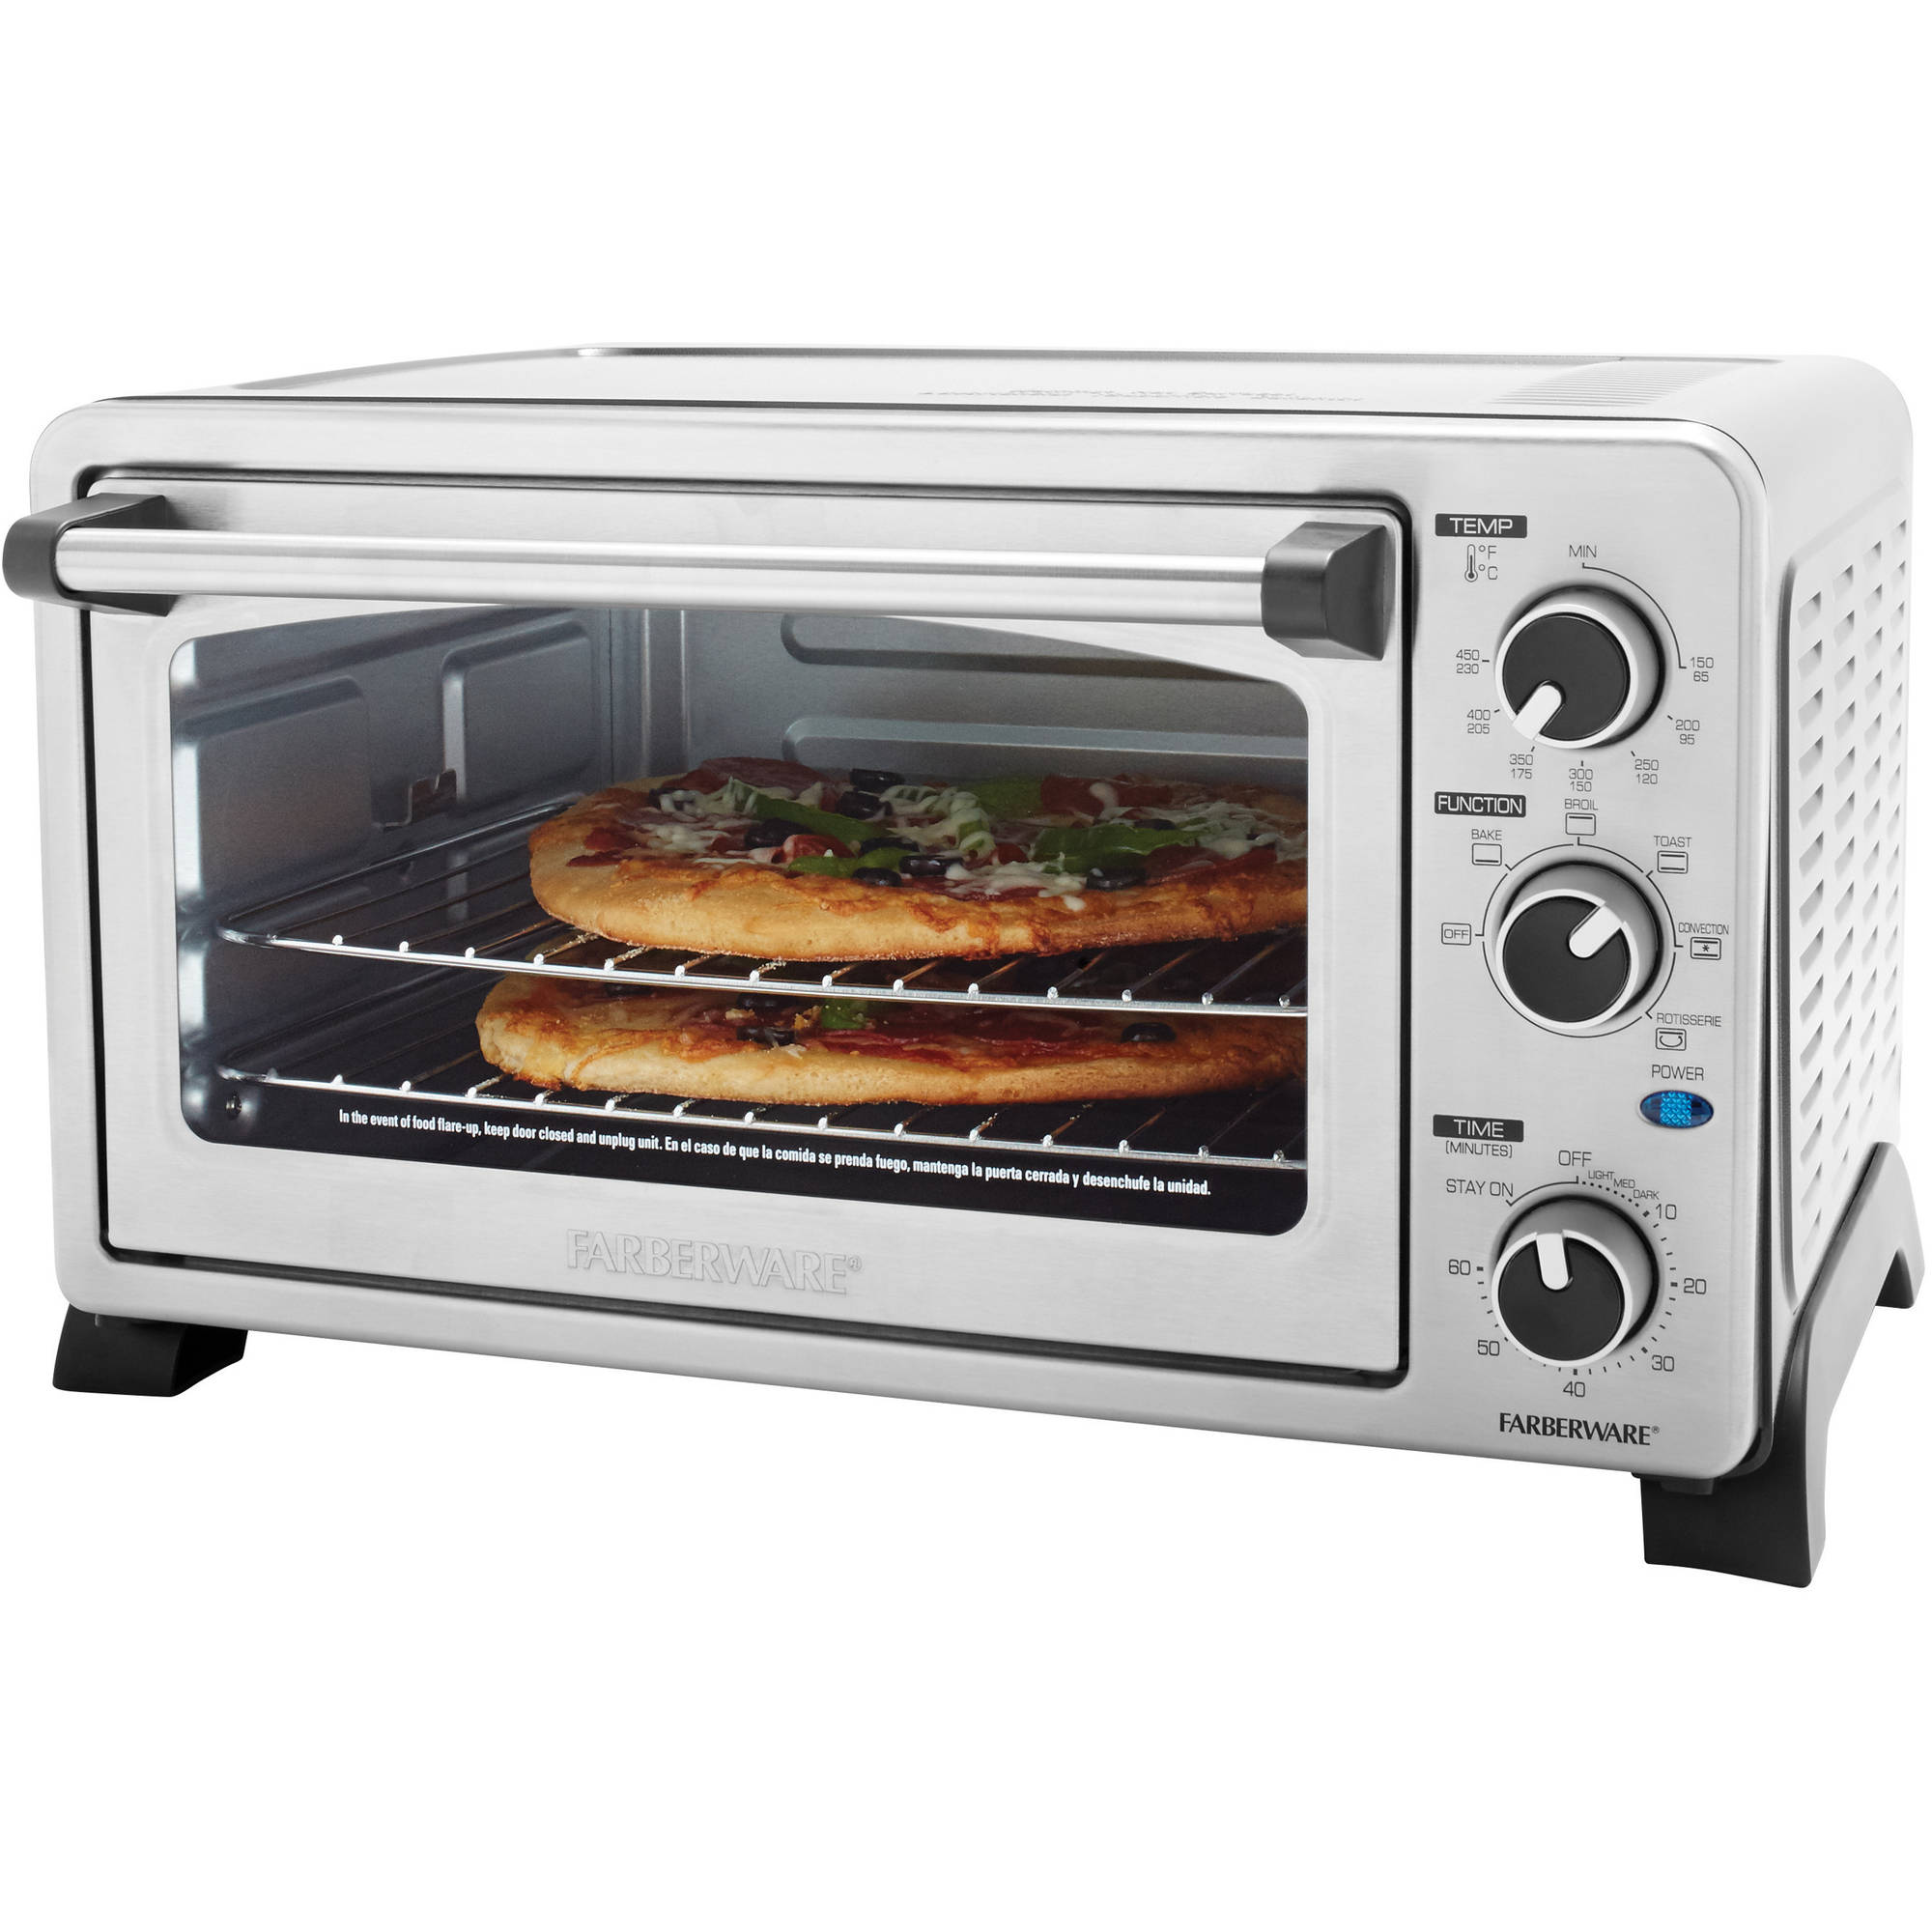 Farberware Toaster Oven, Stainless Steel